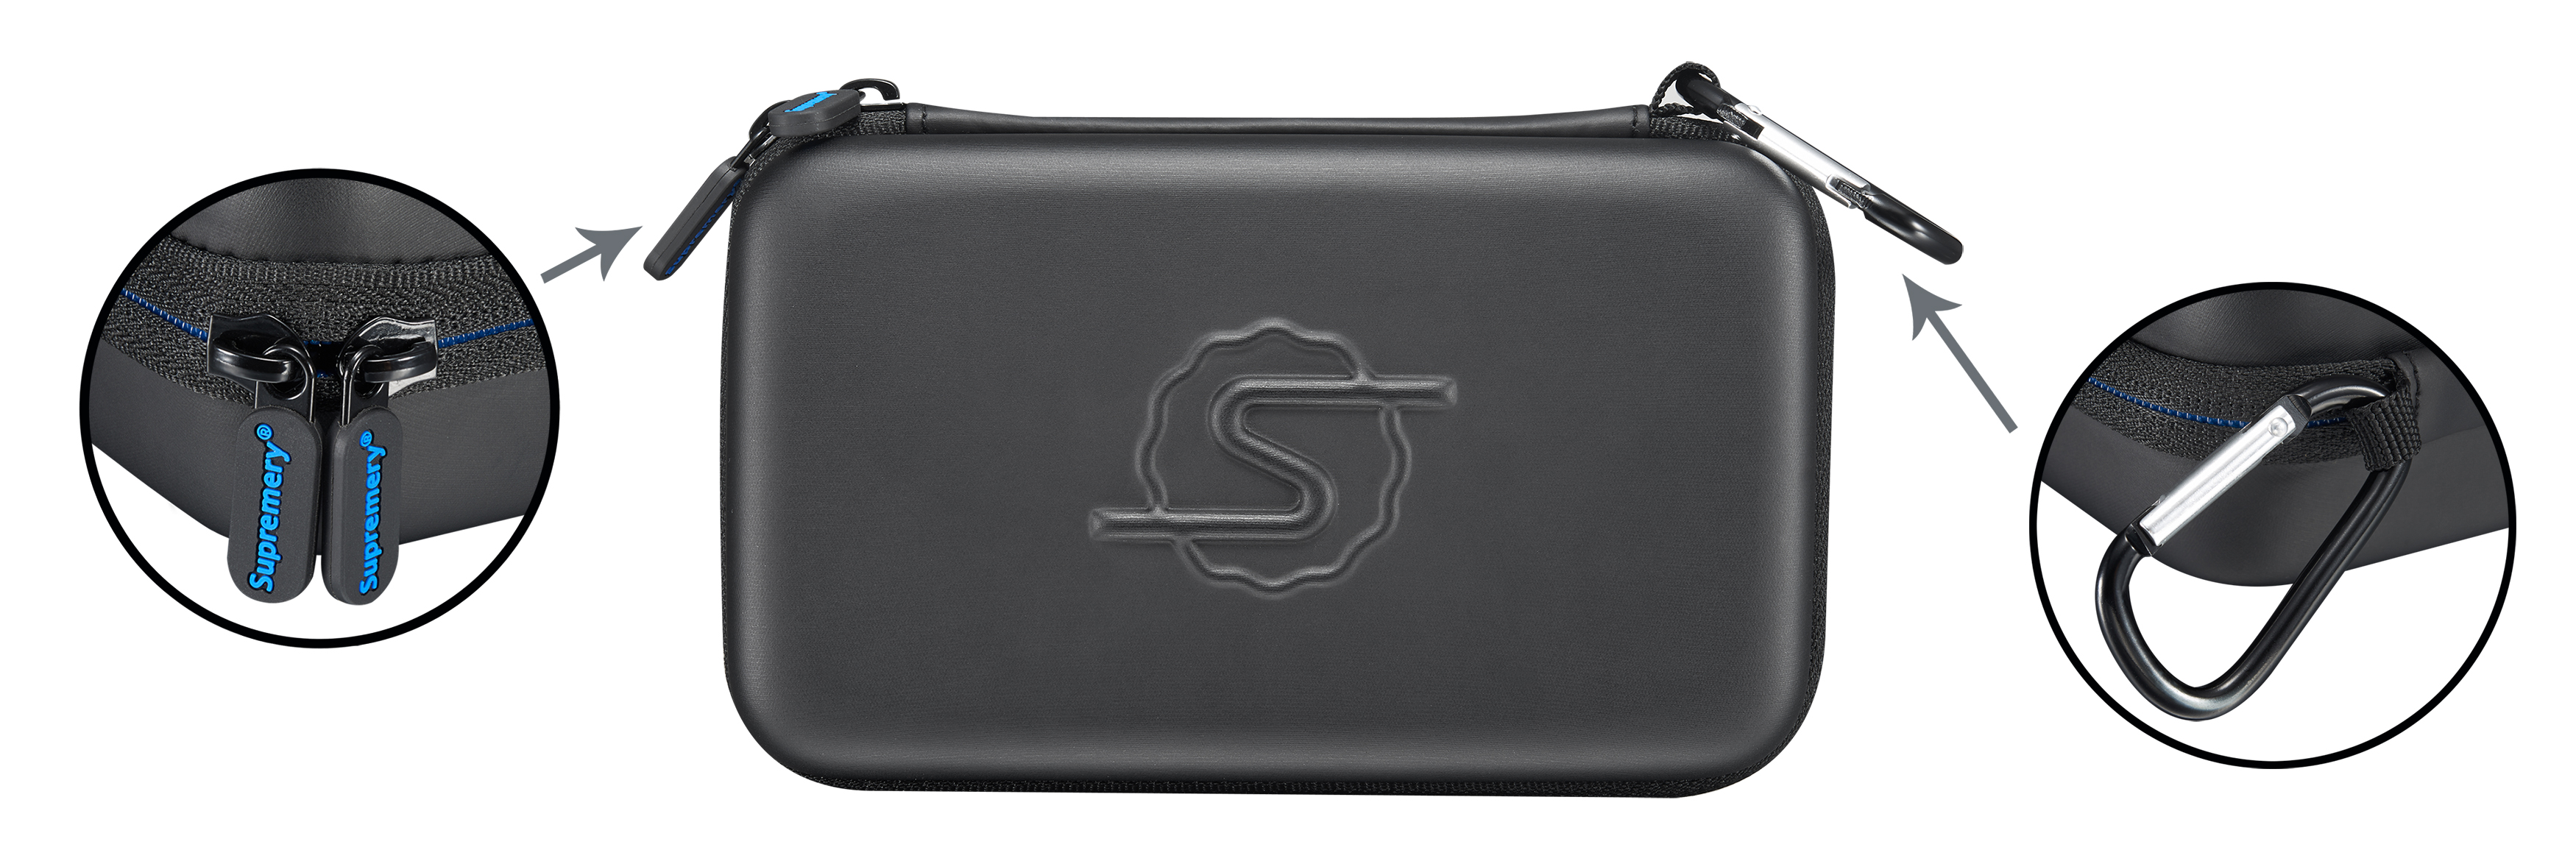 Supremery case f r new nintendo 3ds xl 3ds new 3ds ll for Housse nintendo 3ds xl